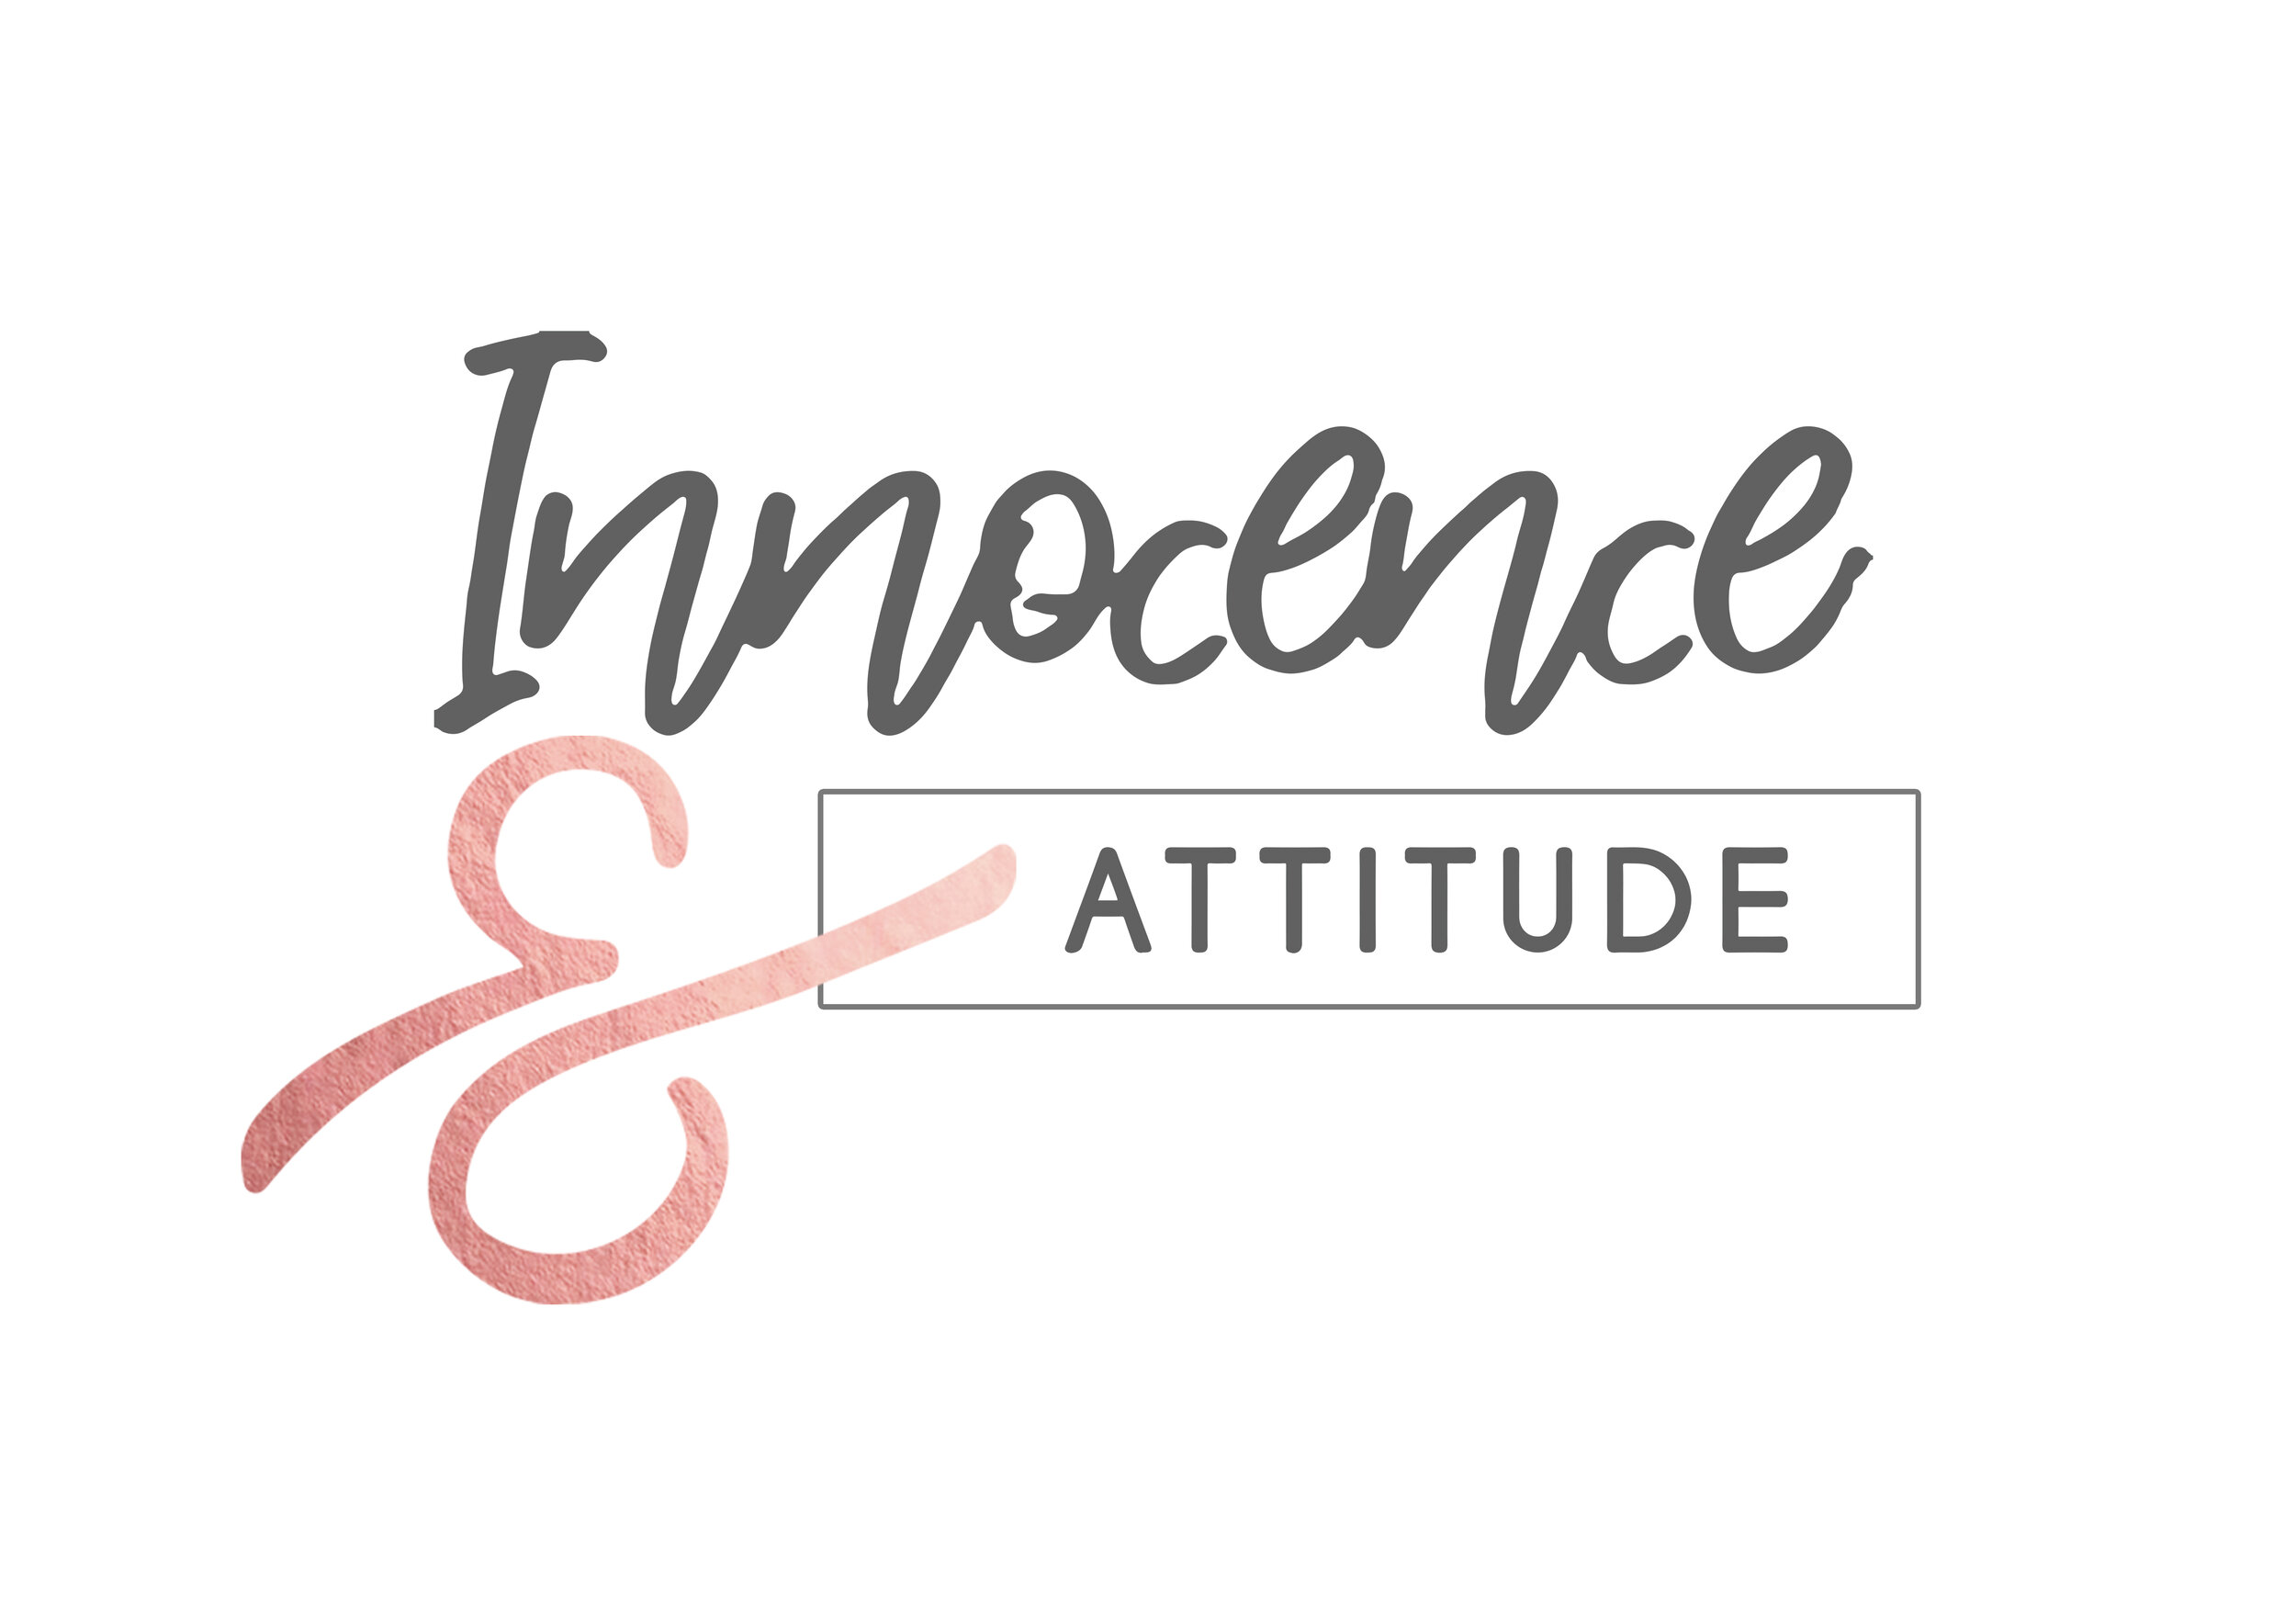 Innocence & Attitude   Carrie-Ann will have $10, $20 and $30 Sale Racks on offer over the 2 day Market Day!! And 10% OFF on all New Season